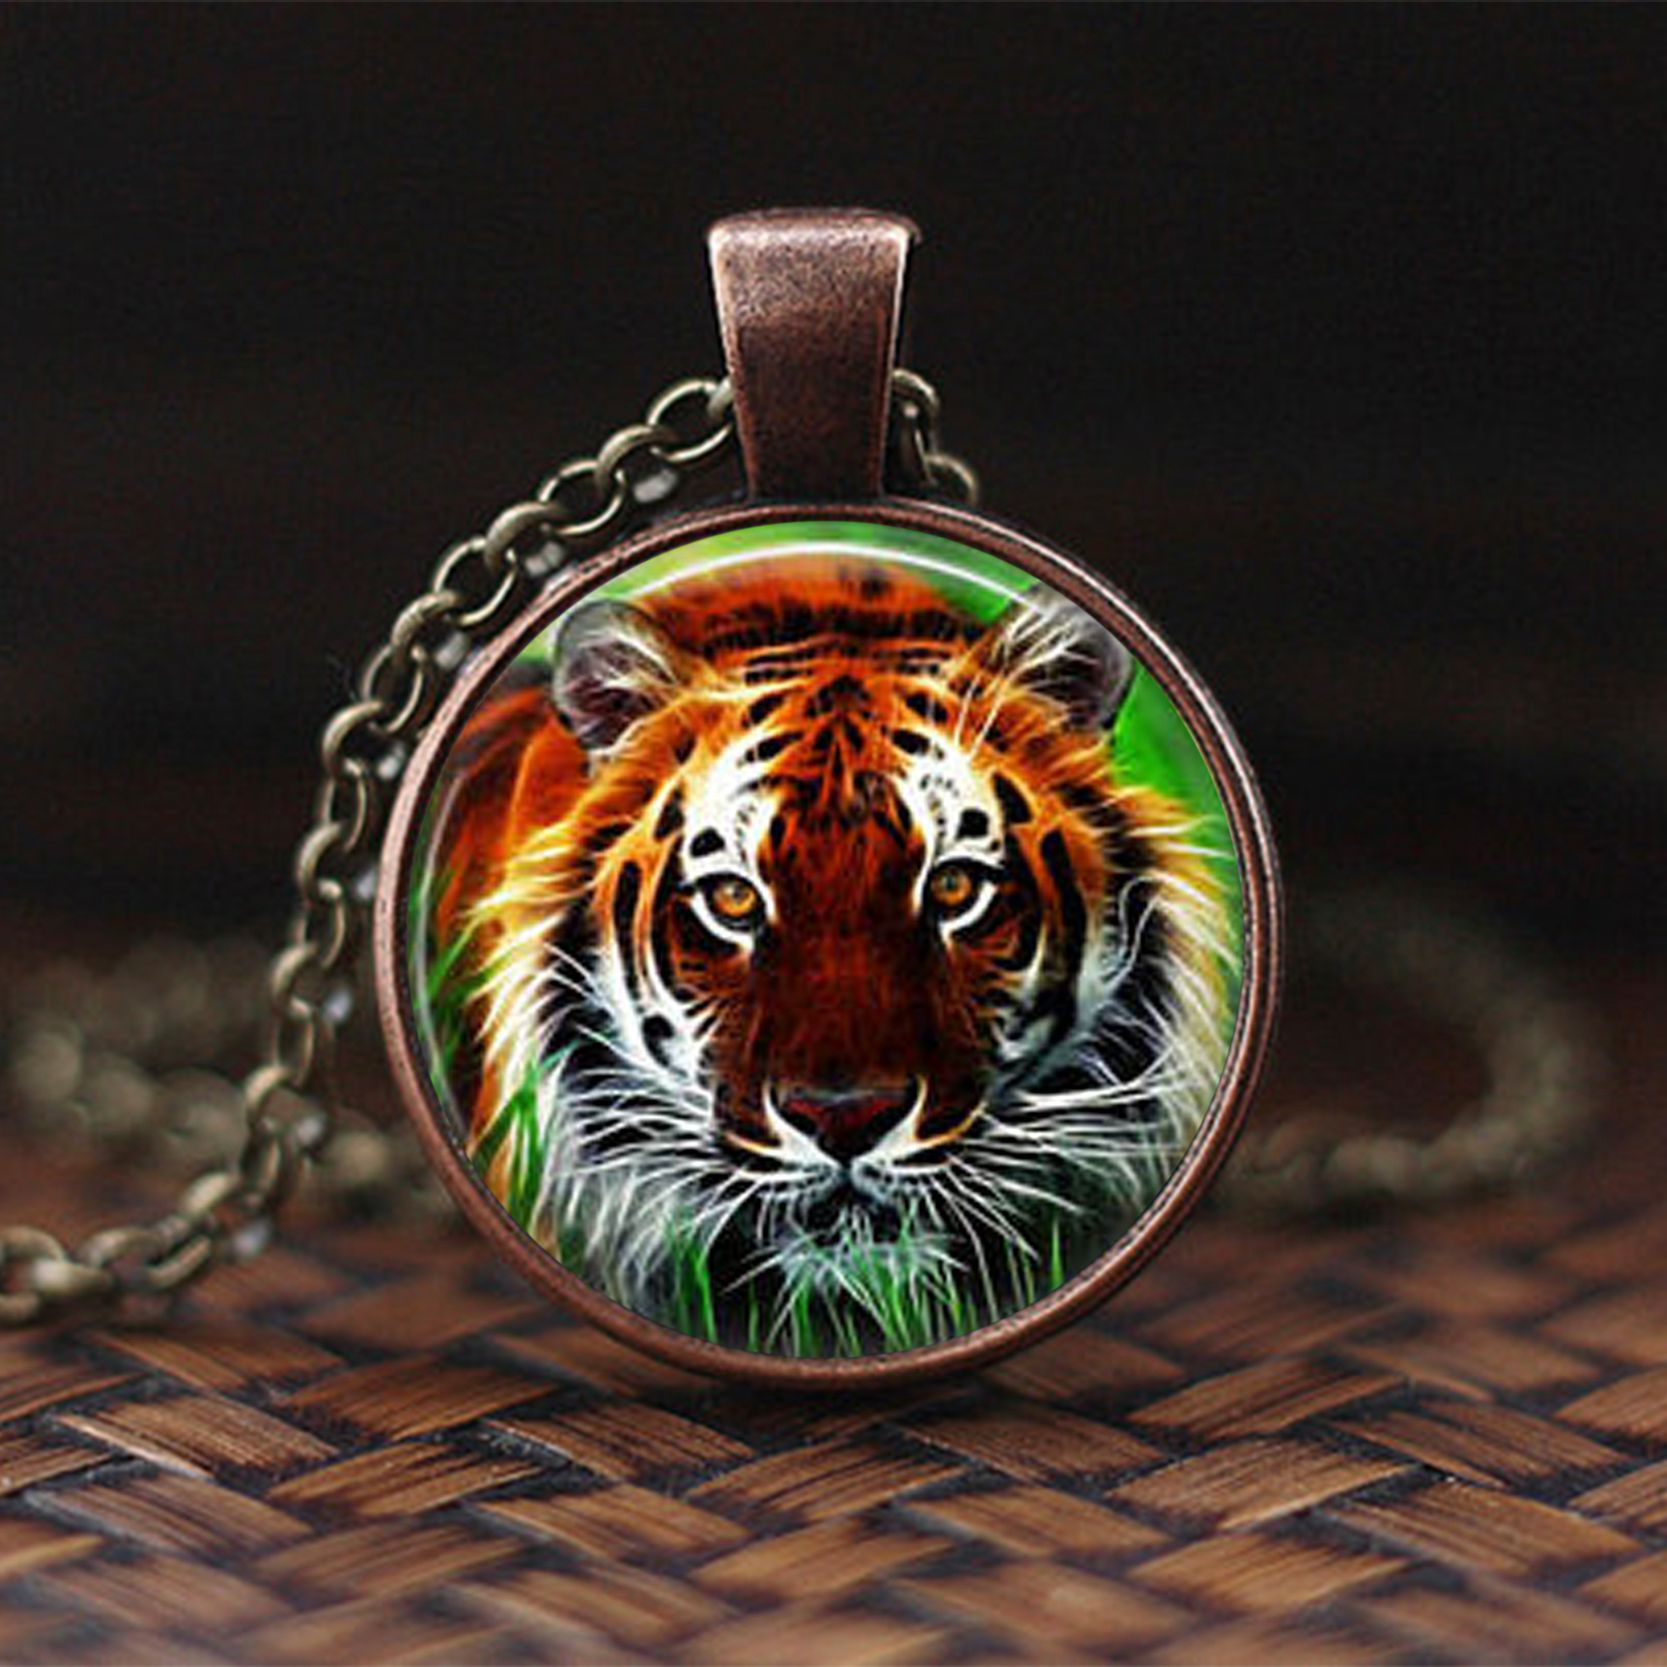 2019 New Fashion Rhinoceros Pendant Necklace Wild Animal Jewelry Tiger Photo Glass Cabochon Choker Necklace Jewelry for Women